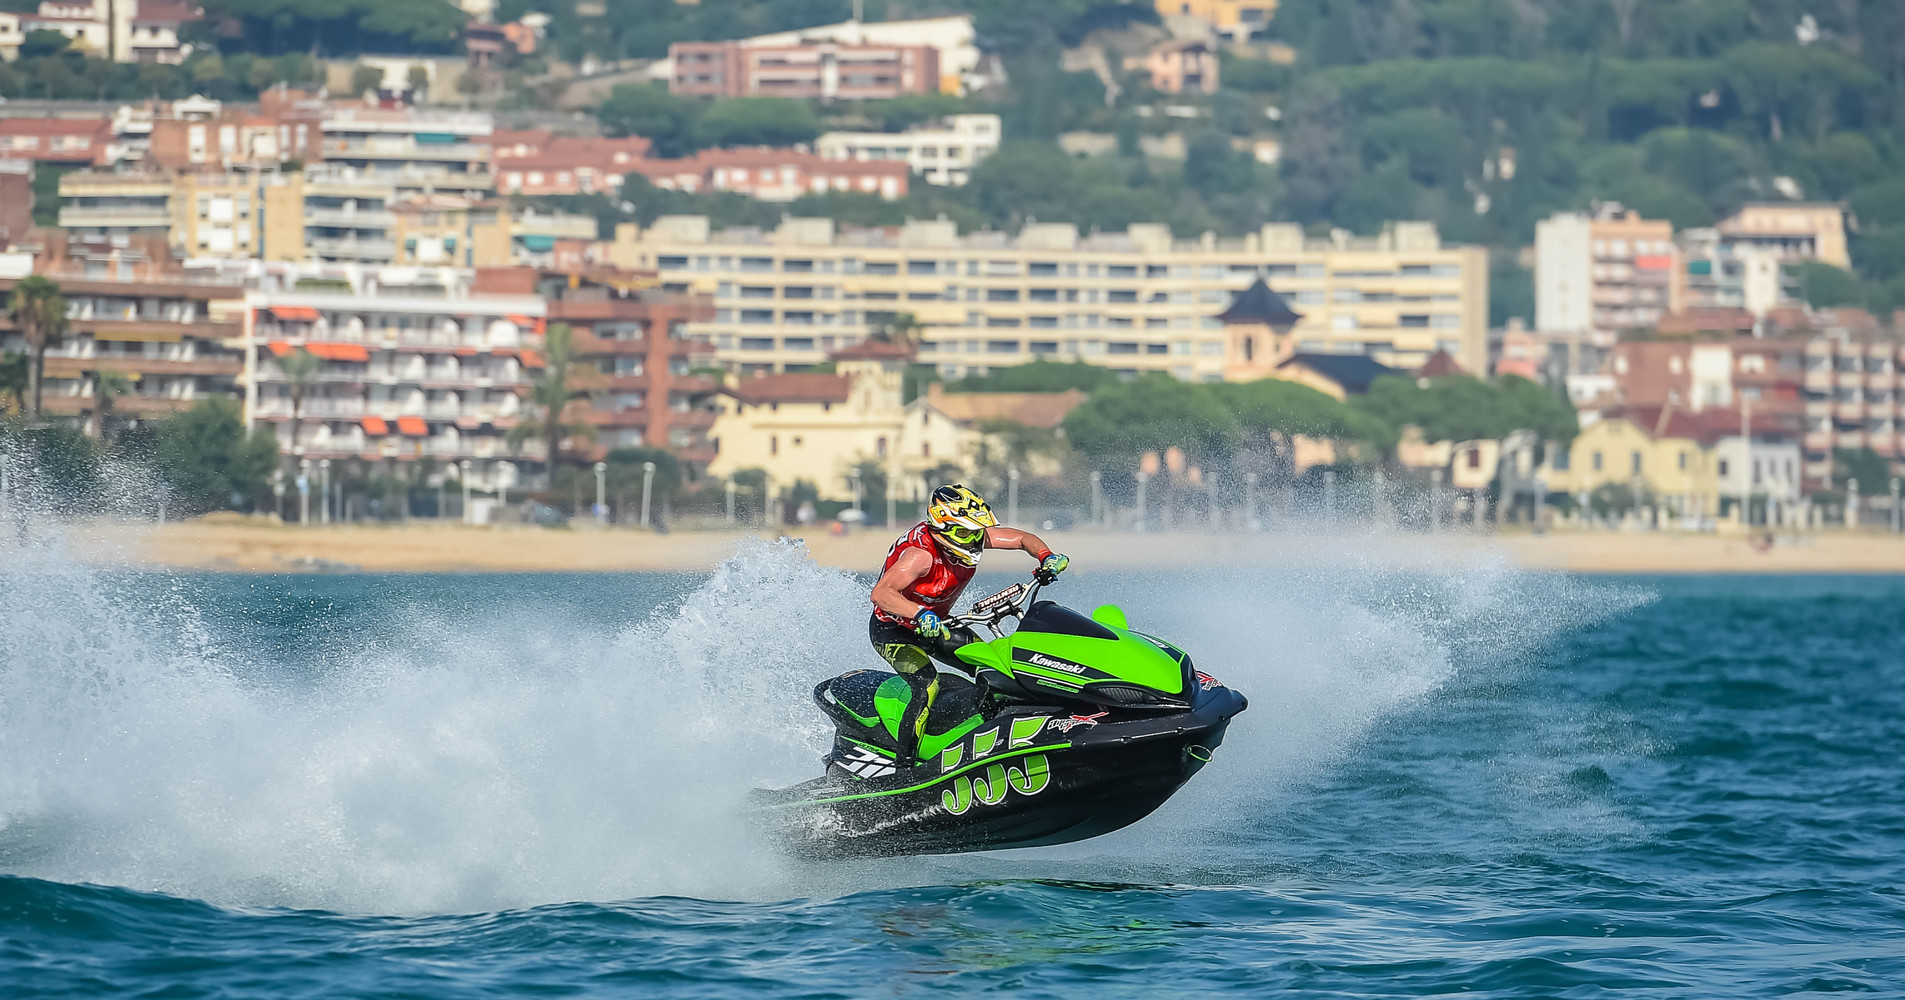 Kawasaki Ultra 310 qualifies for the AquaX Pro and Amateur 300 class